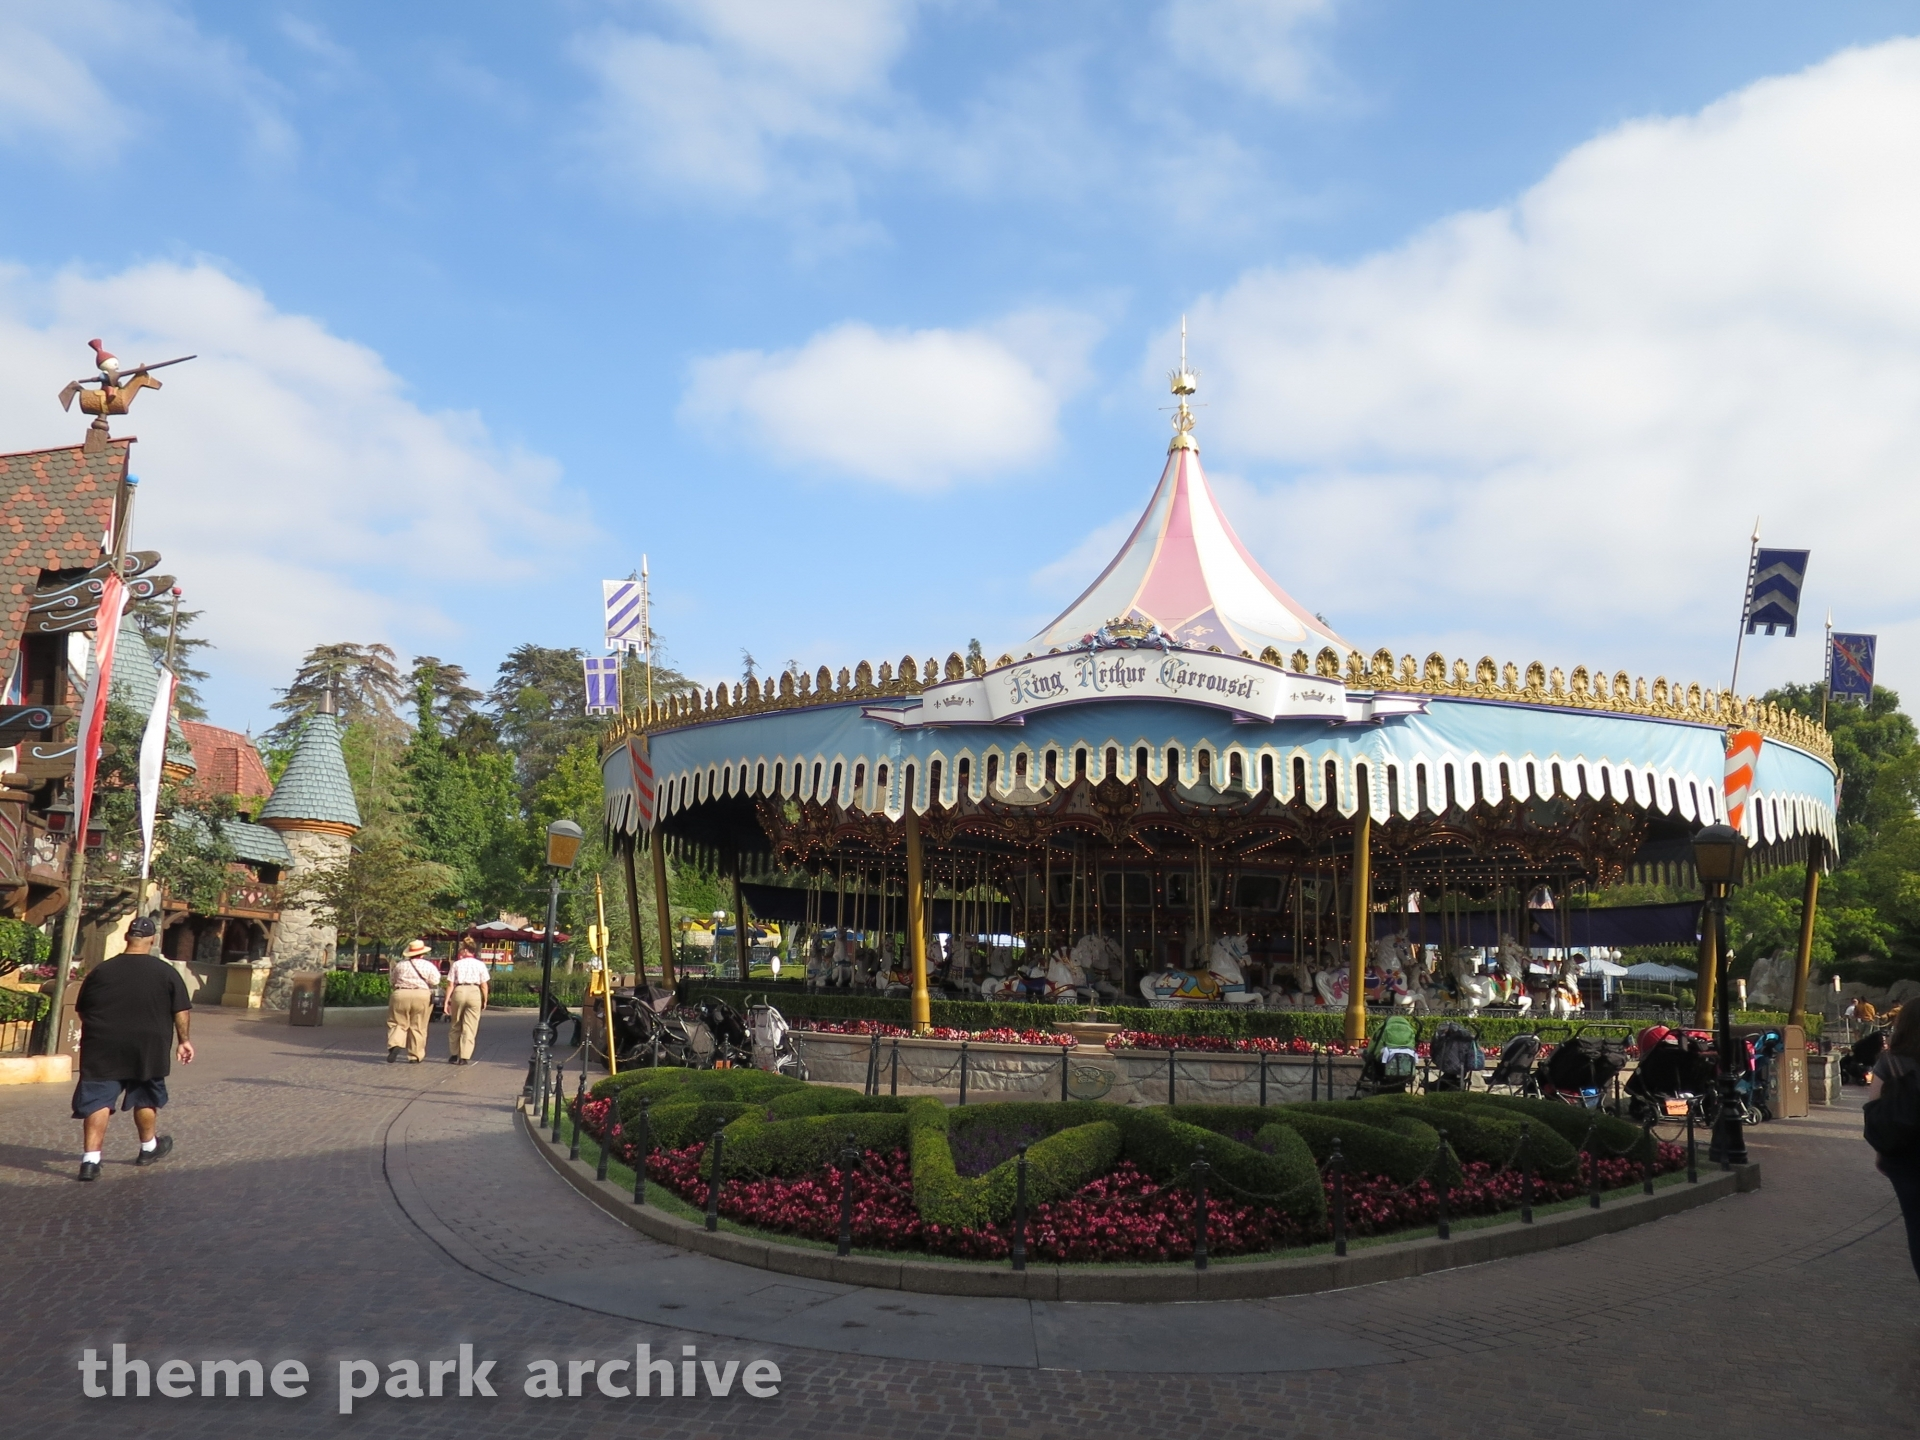 King Arthur Carousel at Disneyland